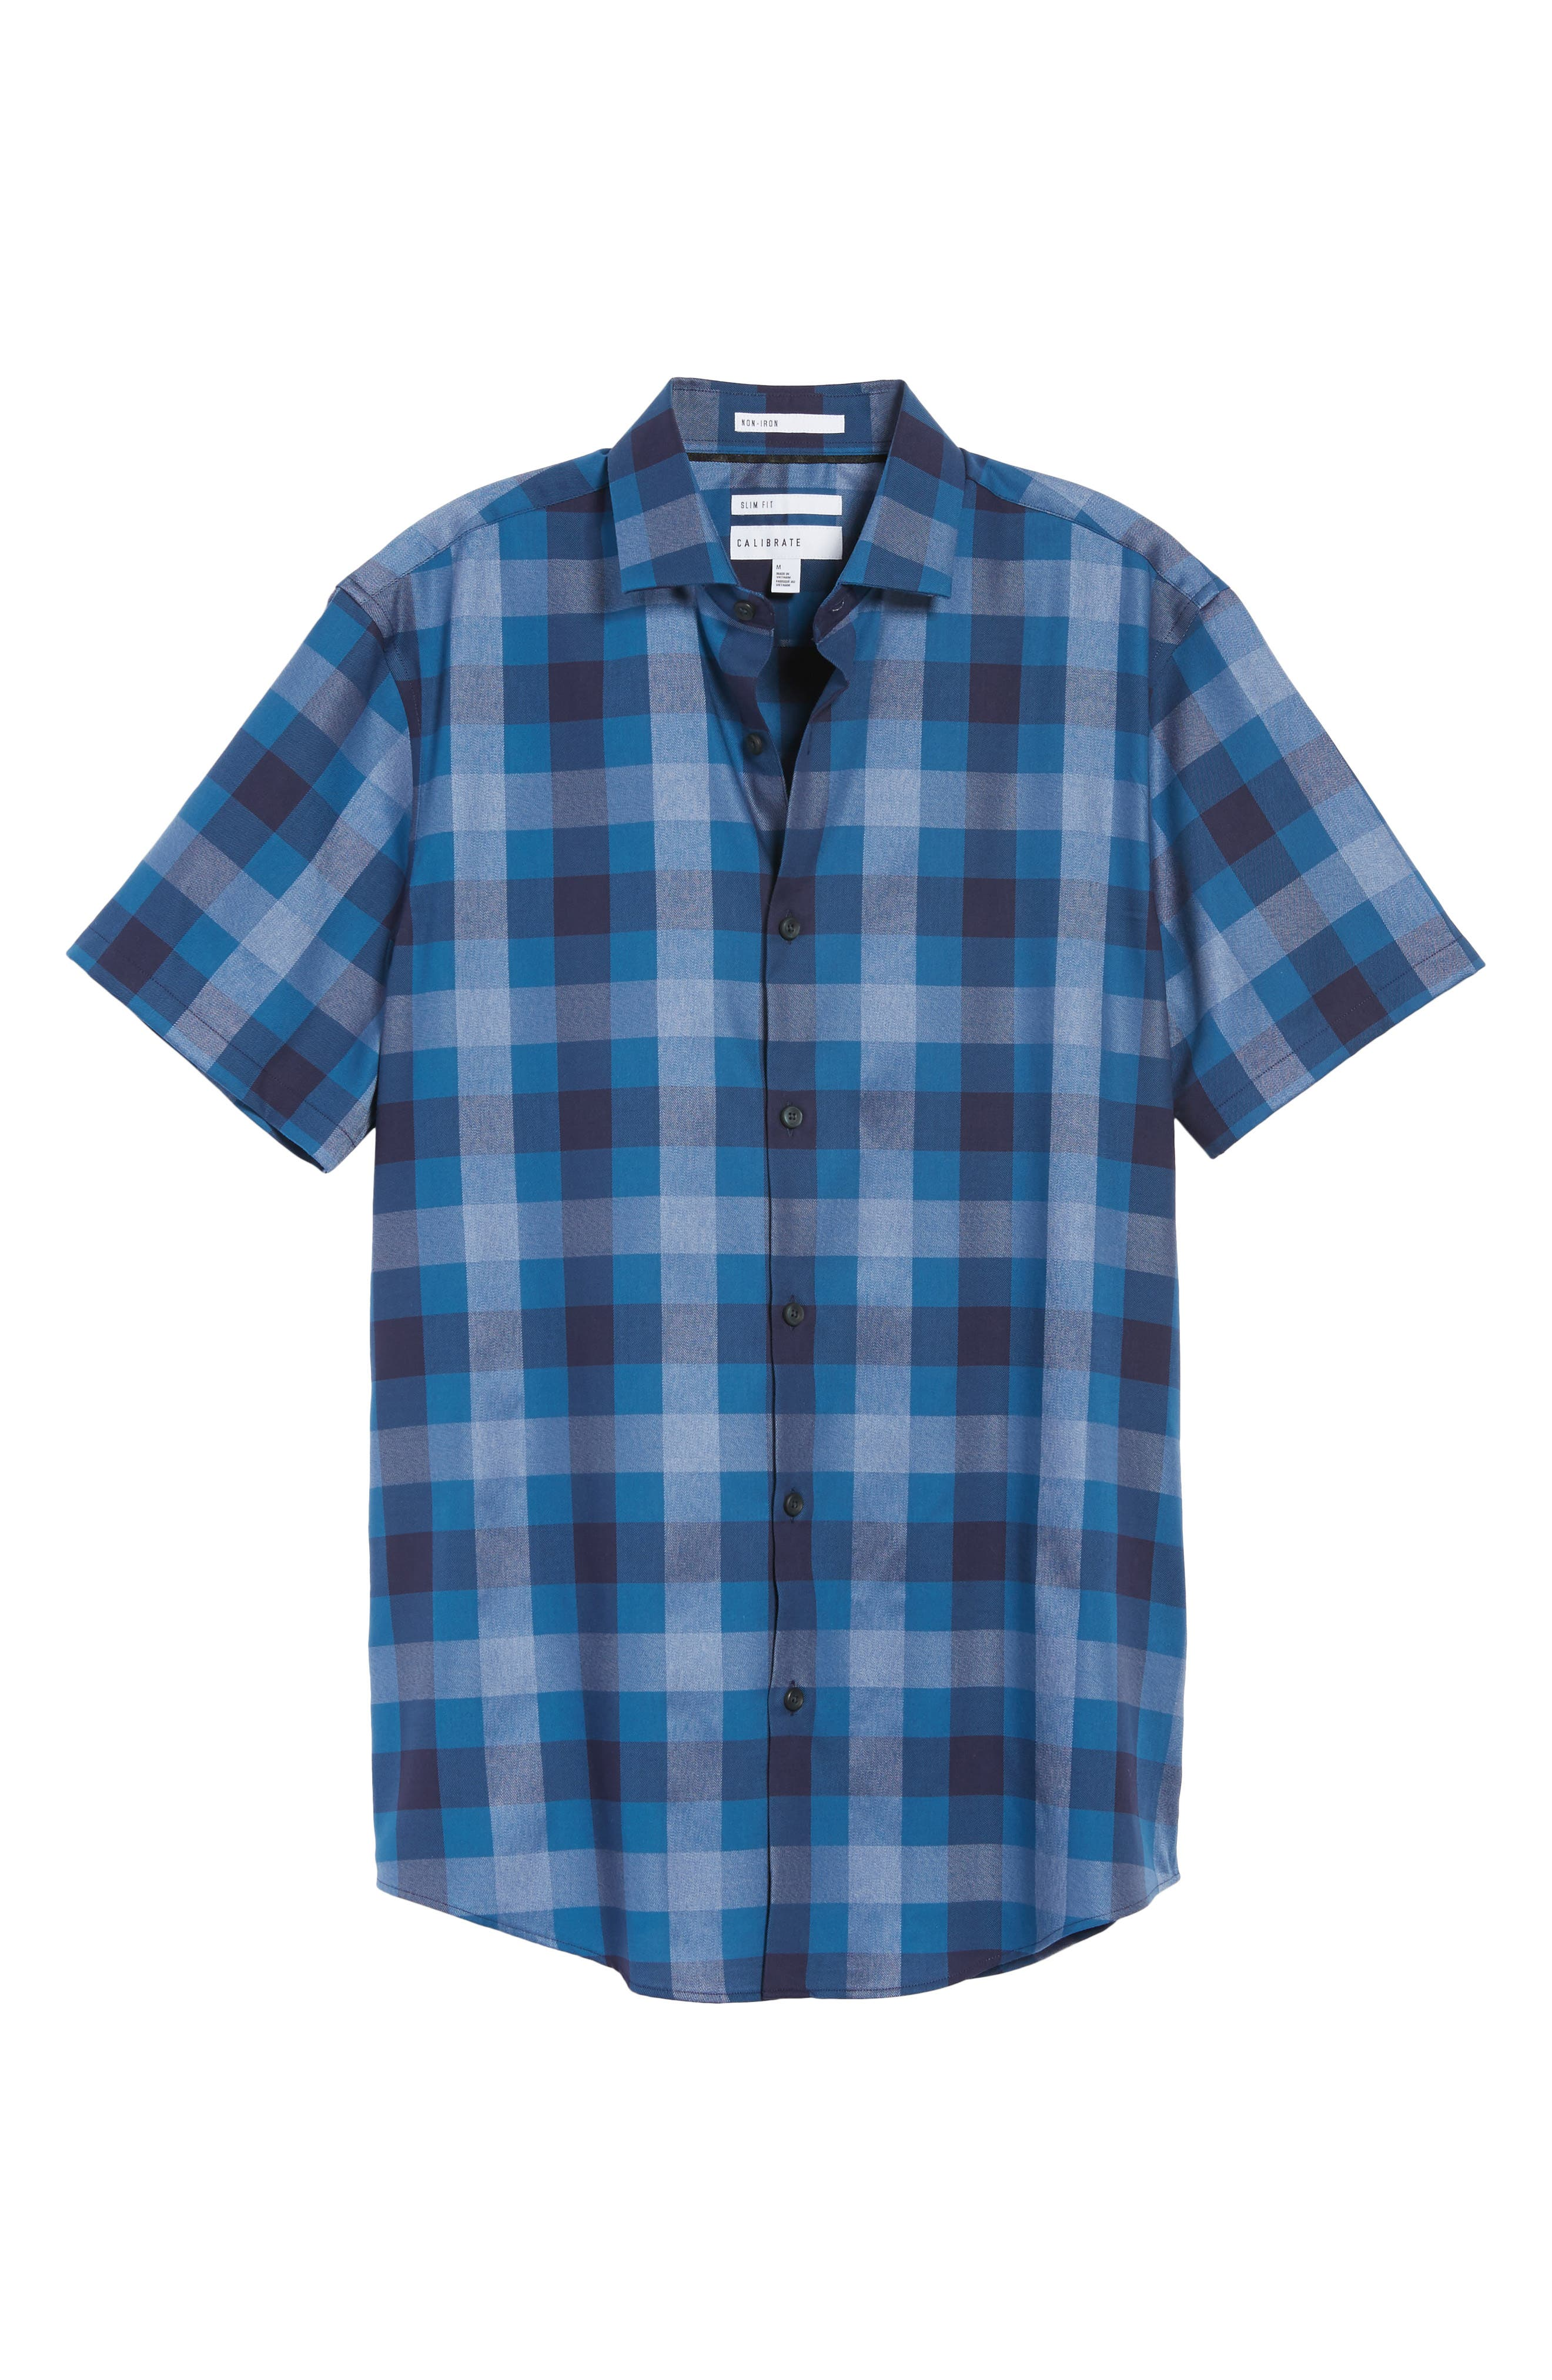 No-Iron Large Check Woven Shirt,                             Alternate thumbnail 6, color,                             410